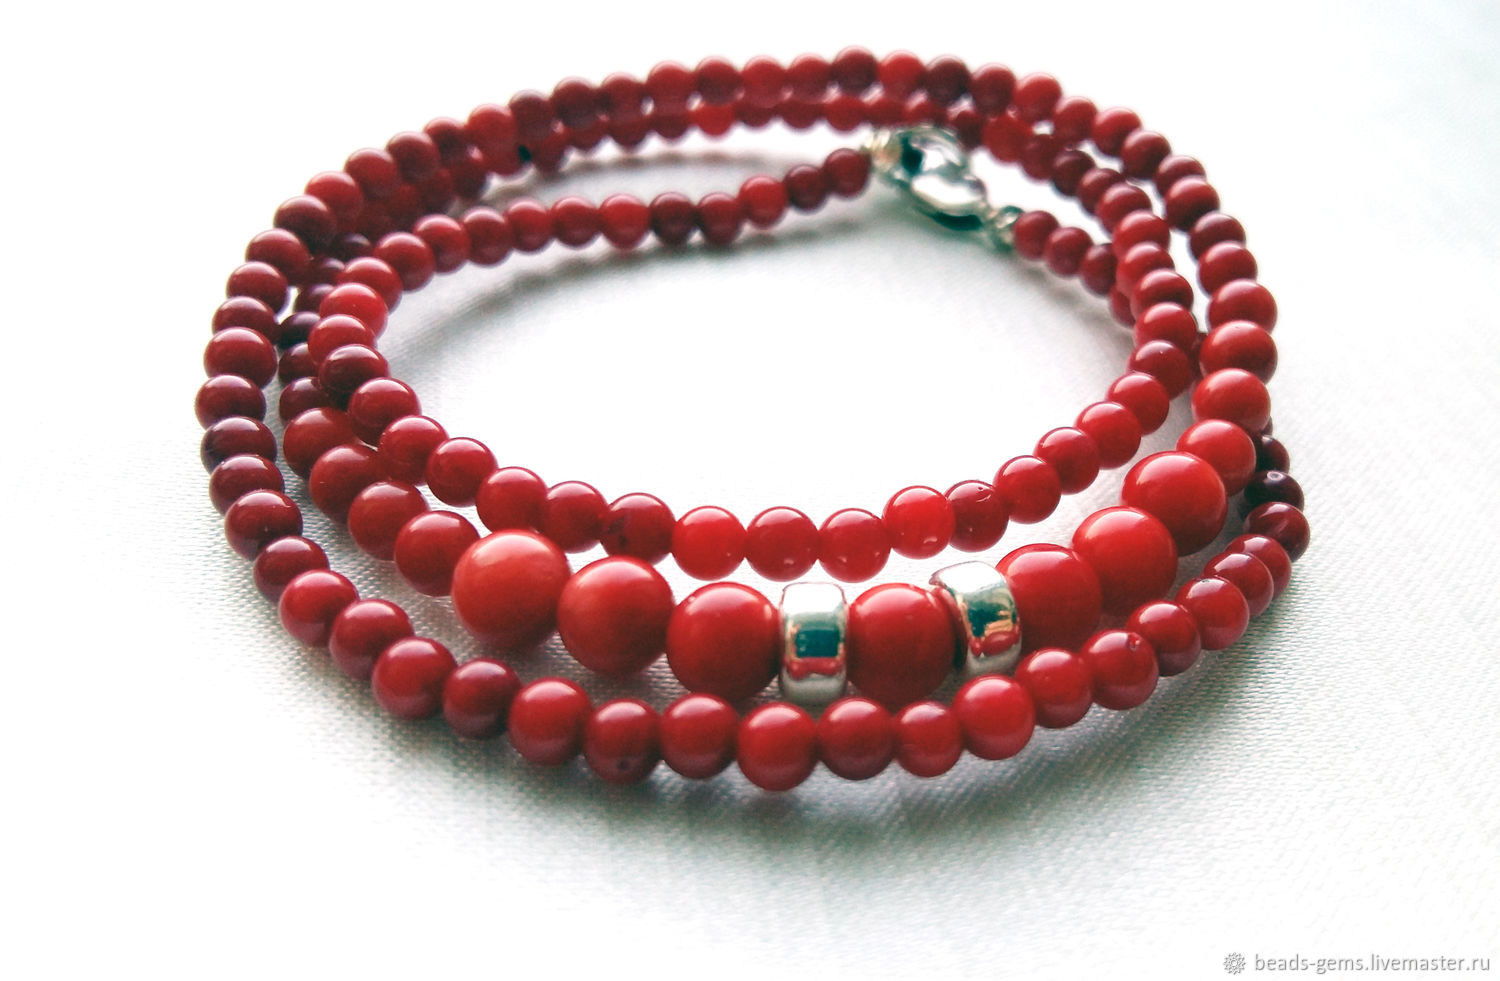 Red Coral Beads, Necklace, Bryansk,  Фото №1